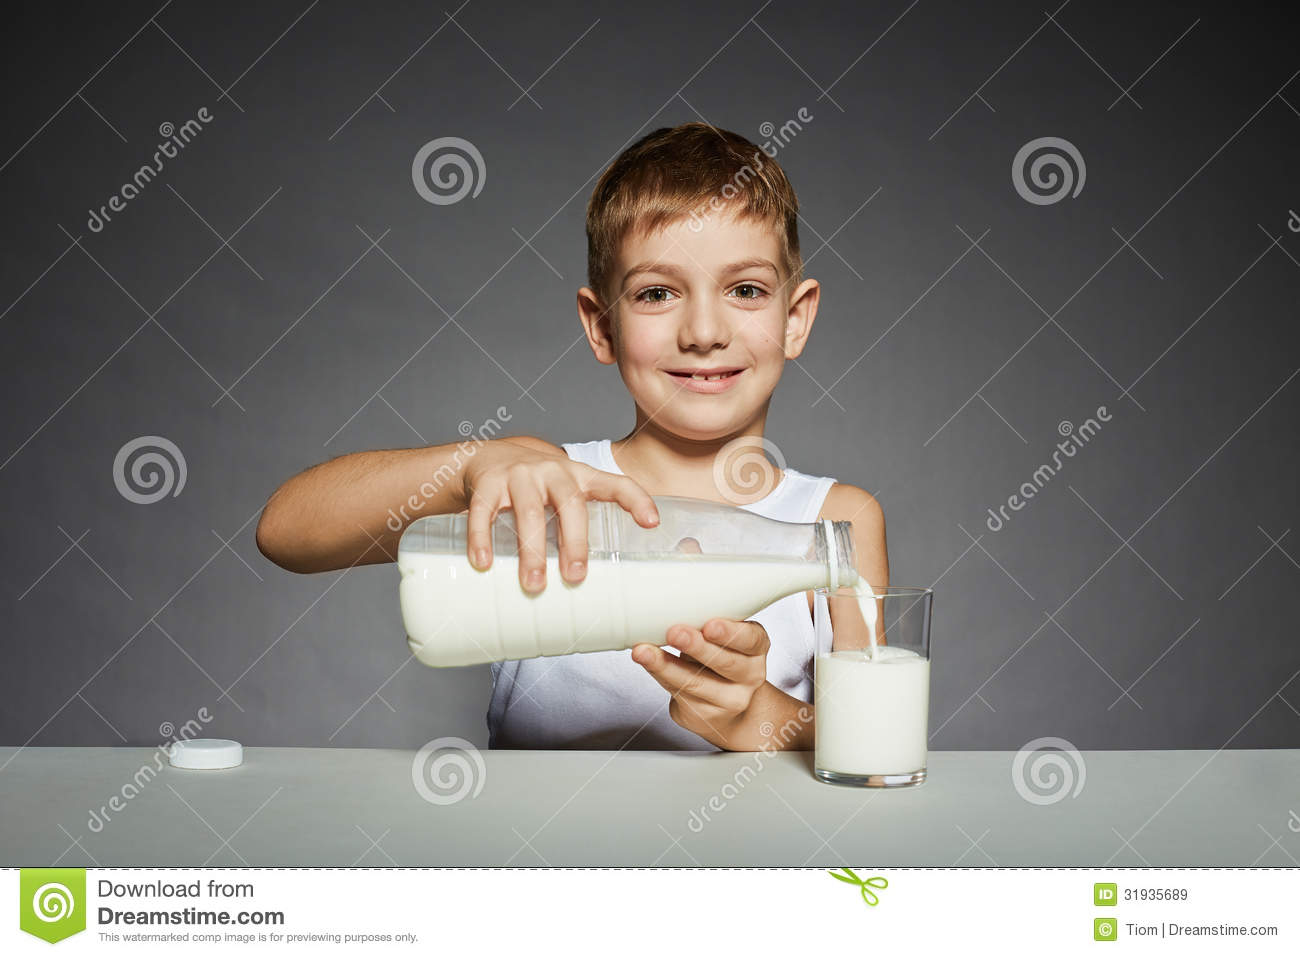 boy-pouring-milk-glass-smiling-31935689.jpg